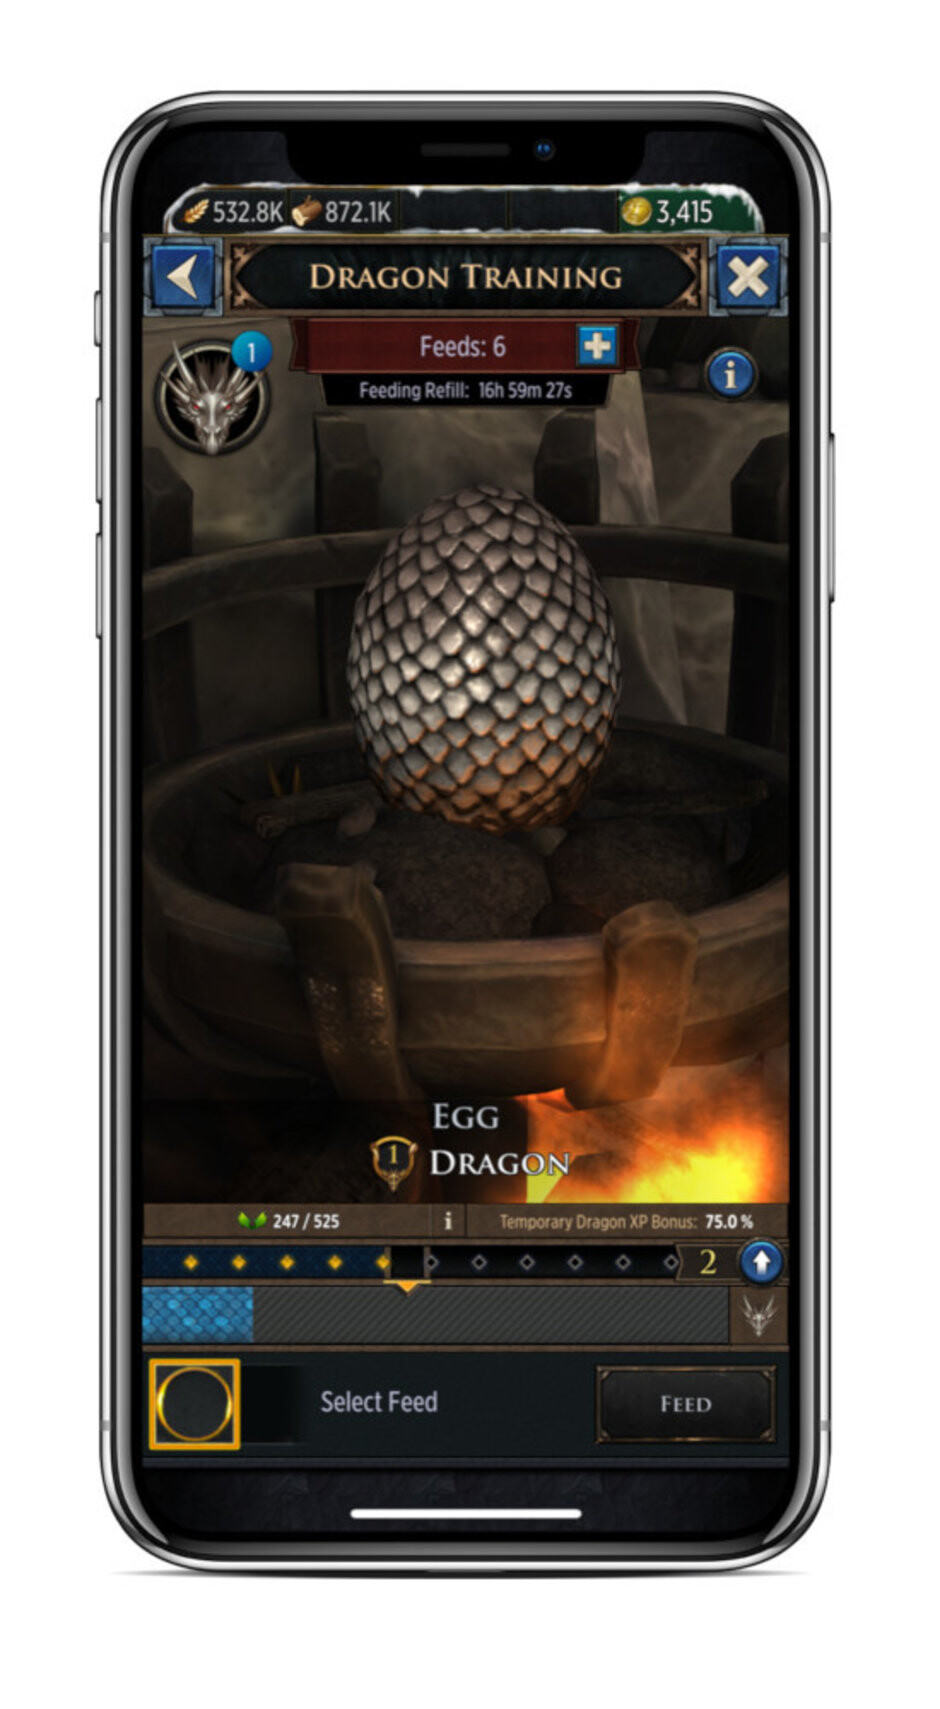 Game of Thrones: Conquest is a mobile game as disappointing as the last season of the show